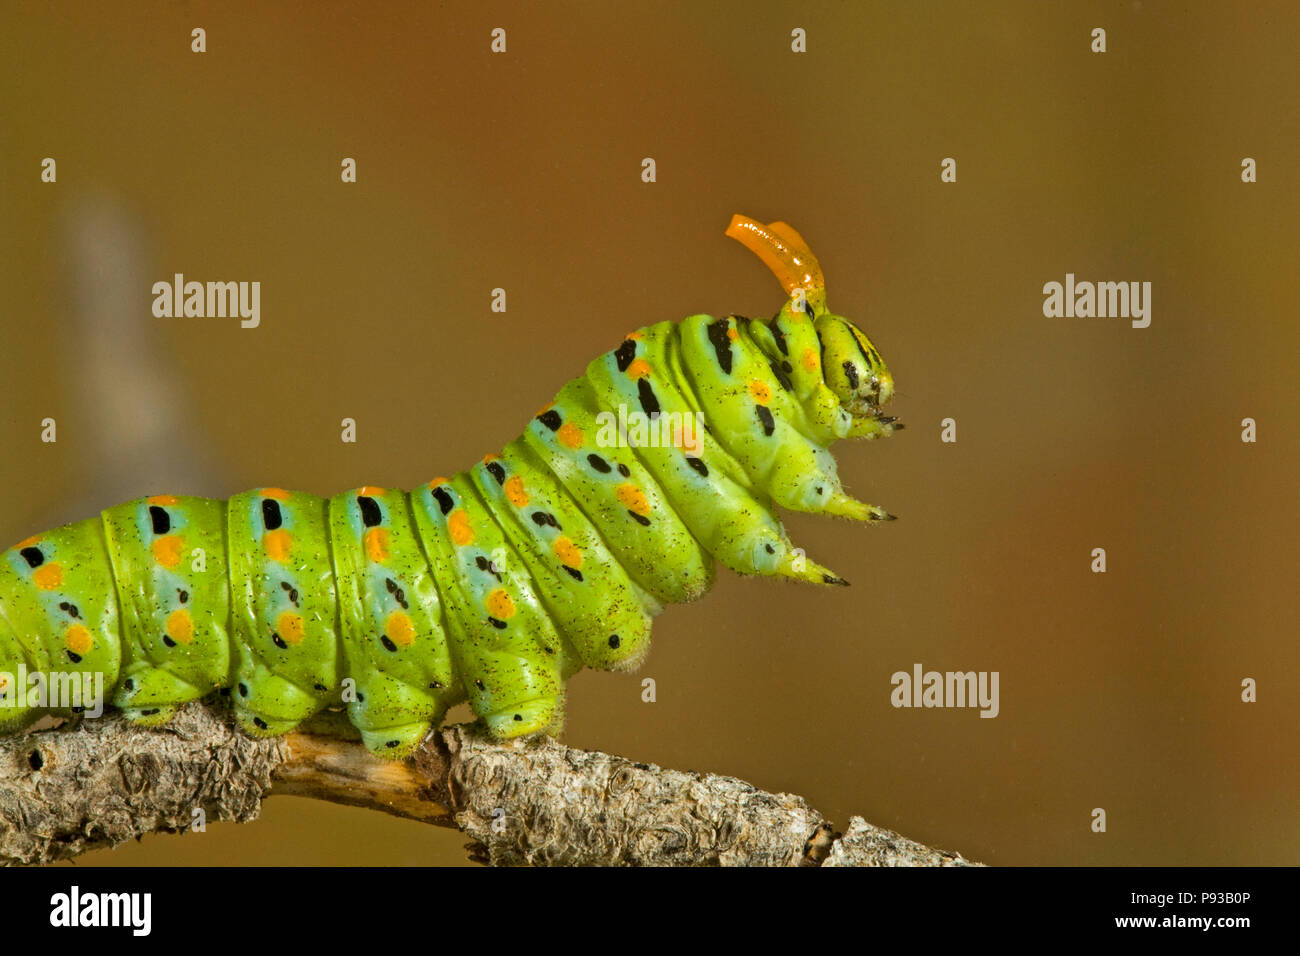 A close up of the caterpillar or larva of an Anise Swallowtail butterfly, Papilio zelicaon, before it pupates. The yellow horns are osmeteria, used fo - Stock Image